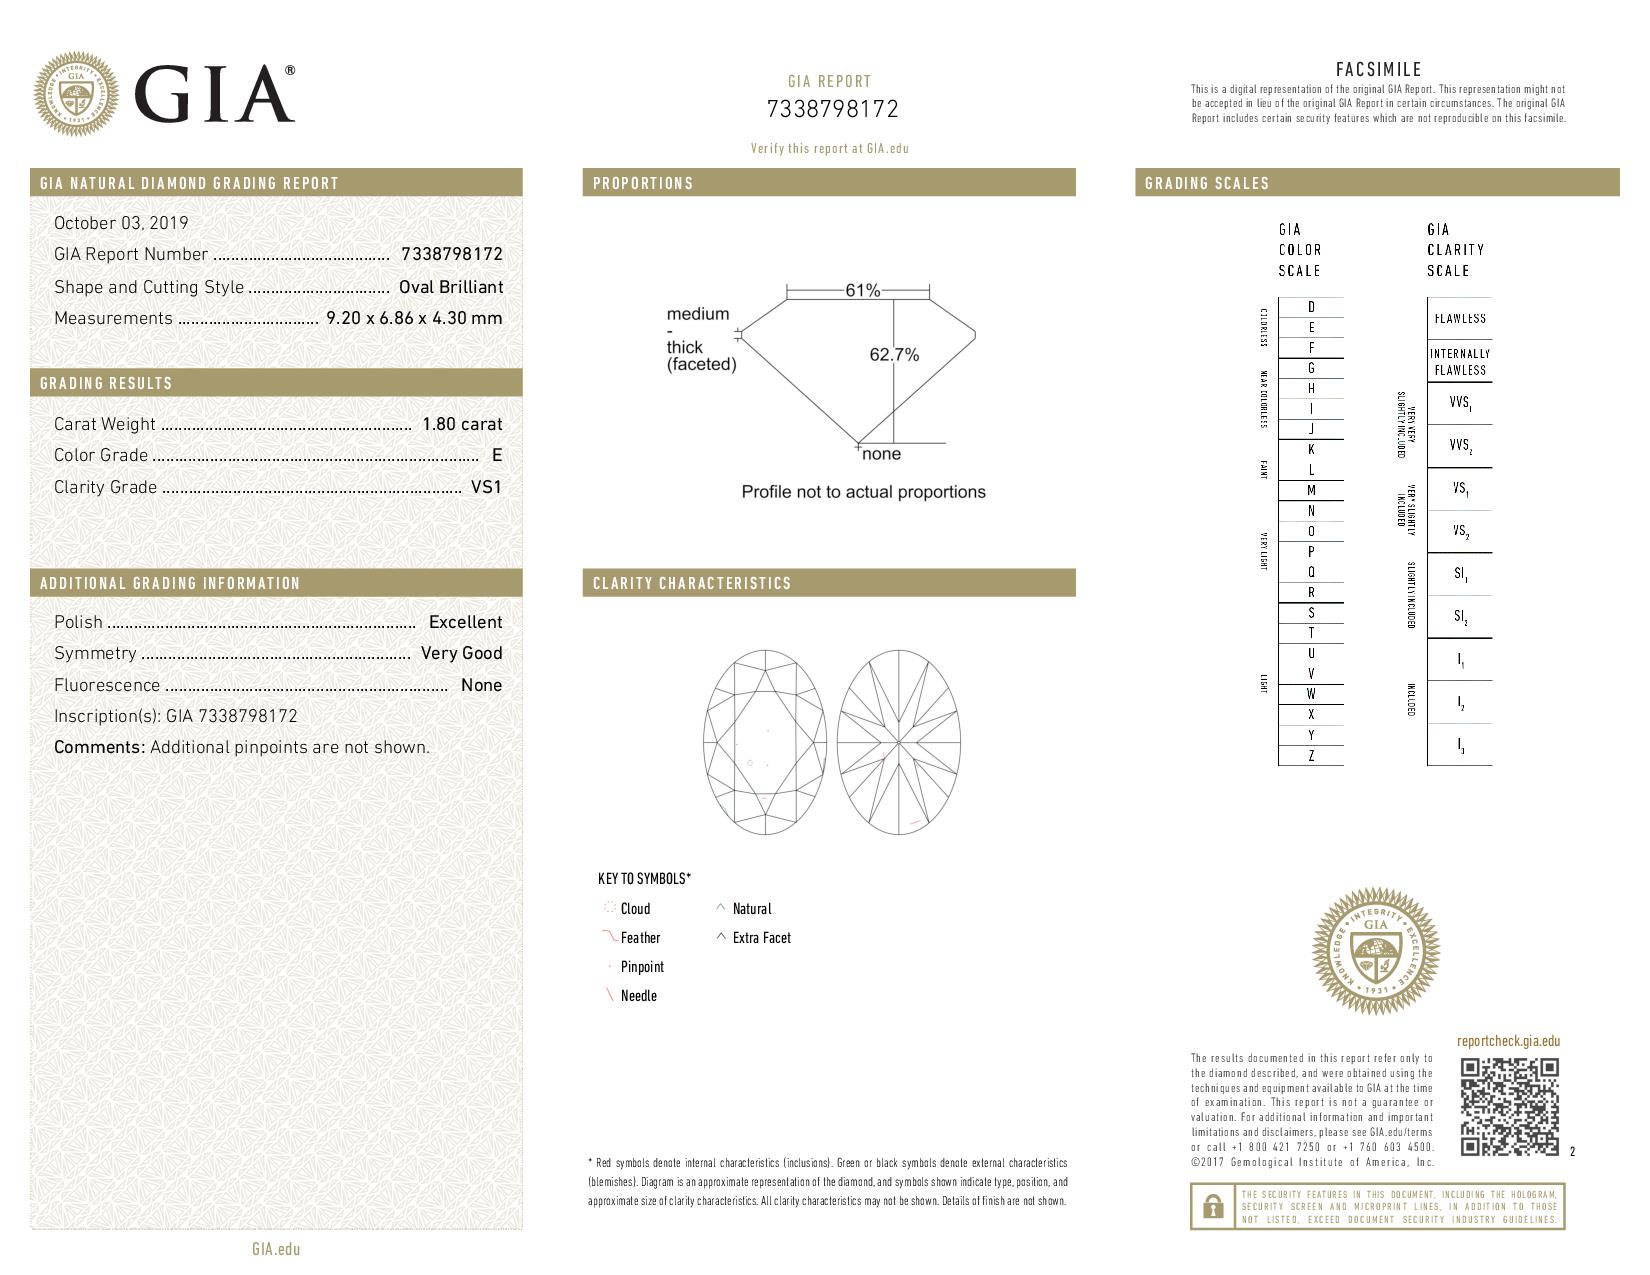 This is a 1.80 carat oval shape, E color, VS1 clarity natural diamond accompanied by a GIA grading report.